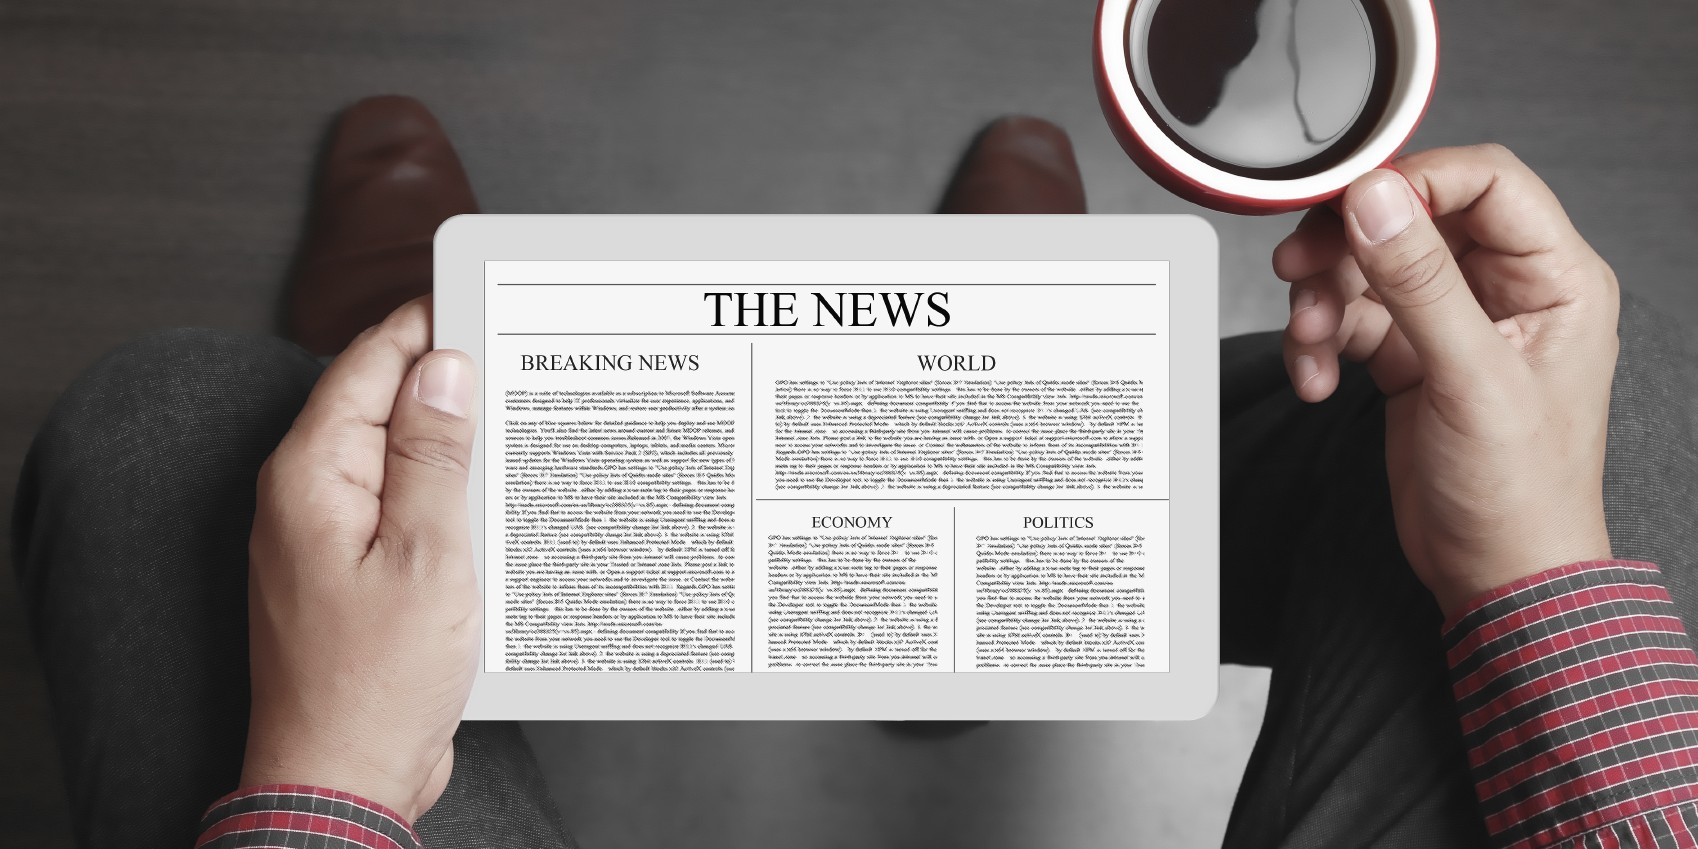 newspaper-tablet